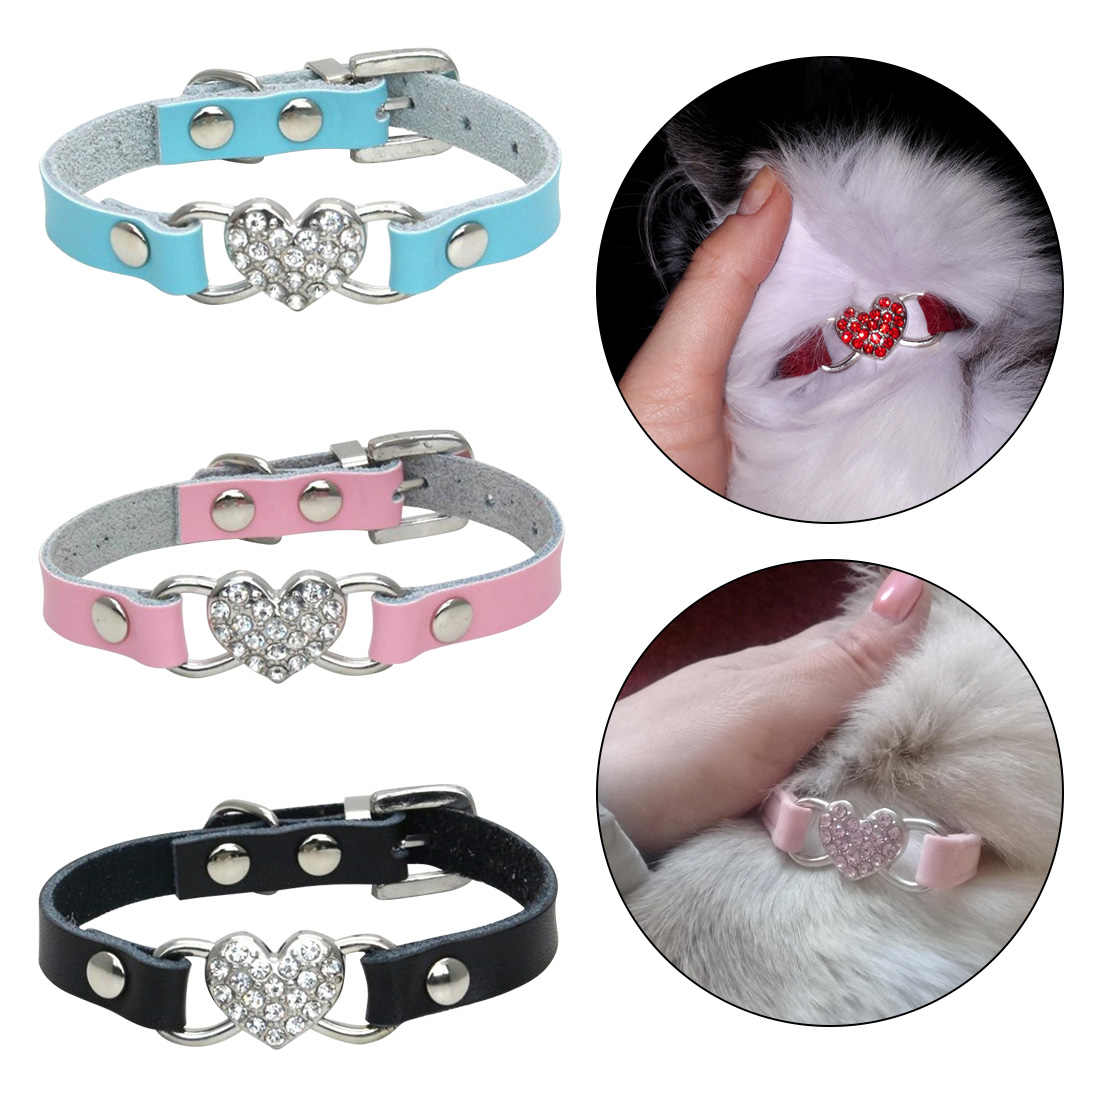 1pc 3Colors Pet Products Heart Charm Cat Collar Puppies Dog Safety Elastic Adjustable with Soft Material